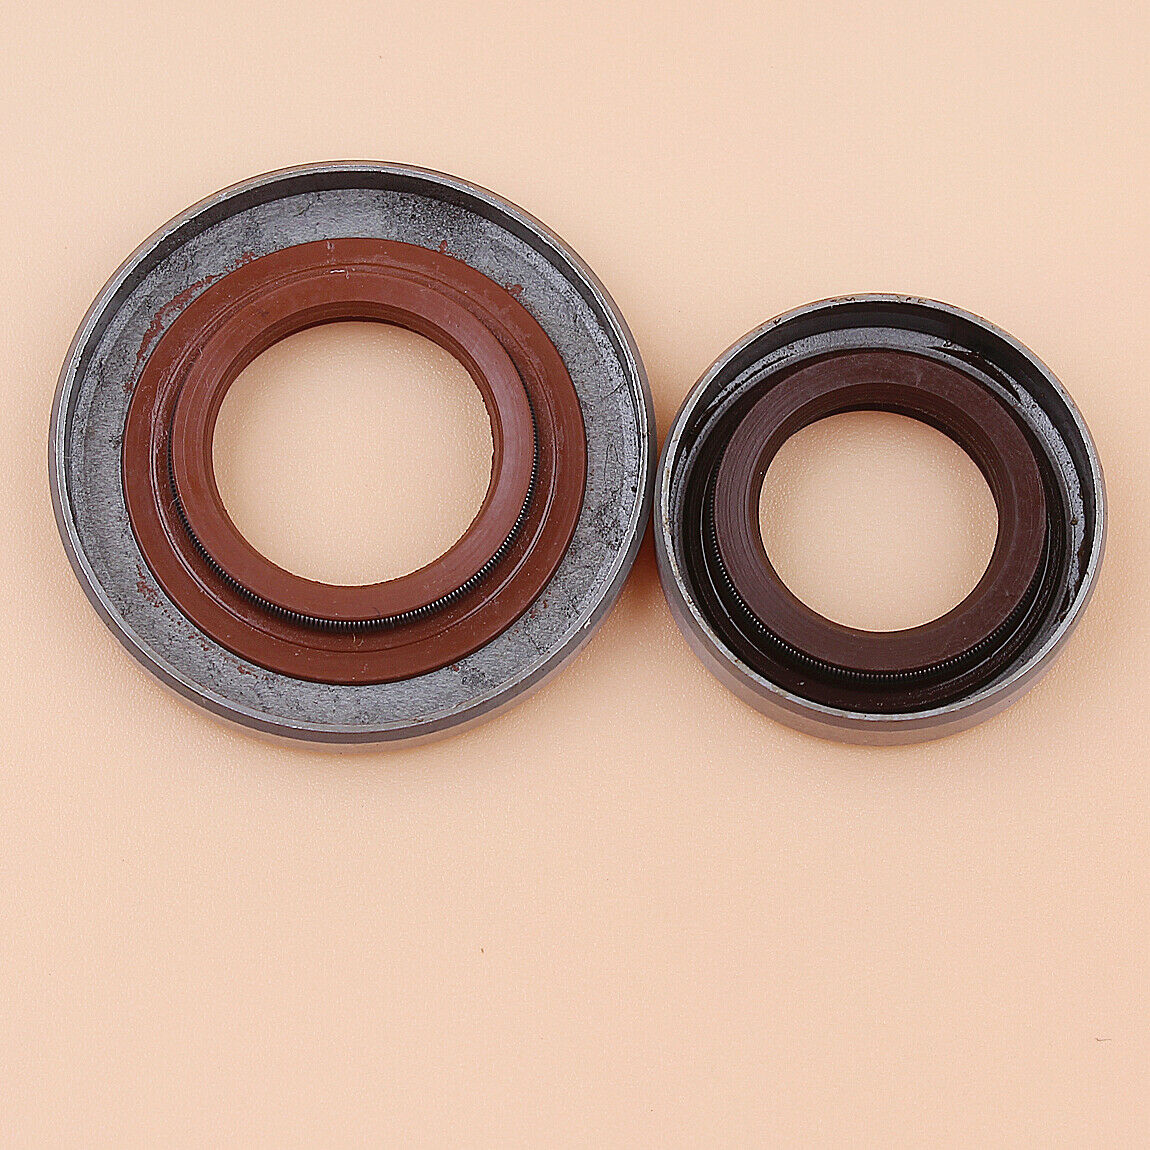 2 Pc//set Crankshaft Oil Seal For Stihl 028 028 AV 028 WB 028 Super Chainsaw Tool